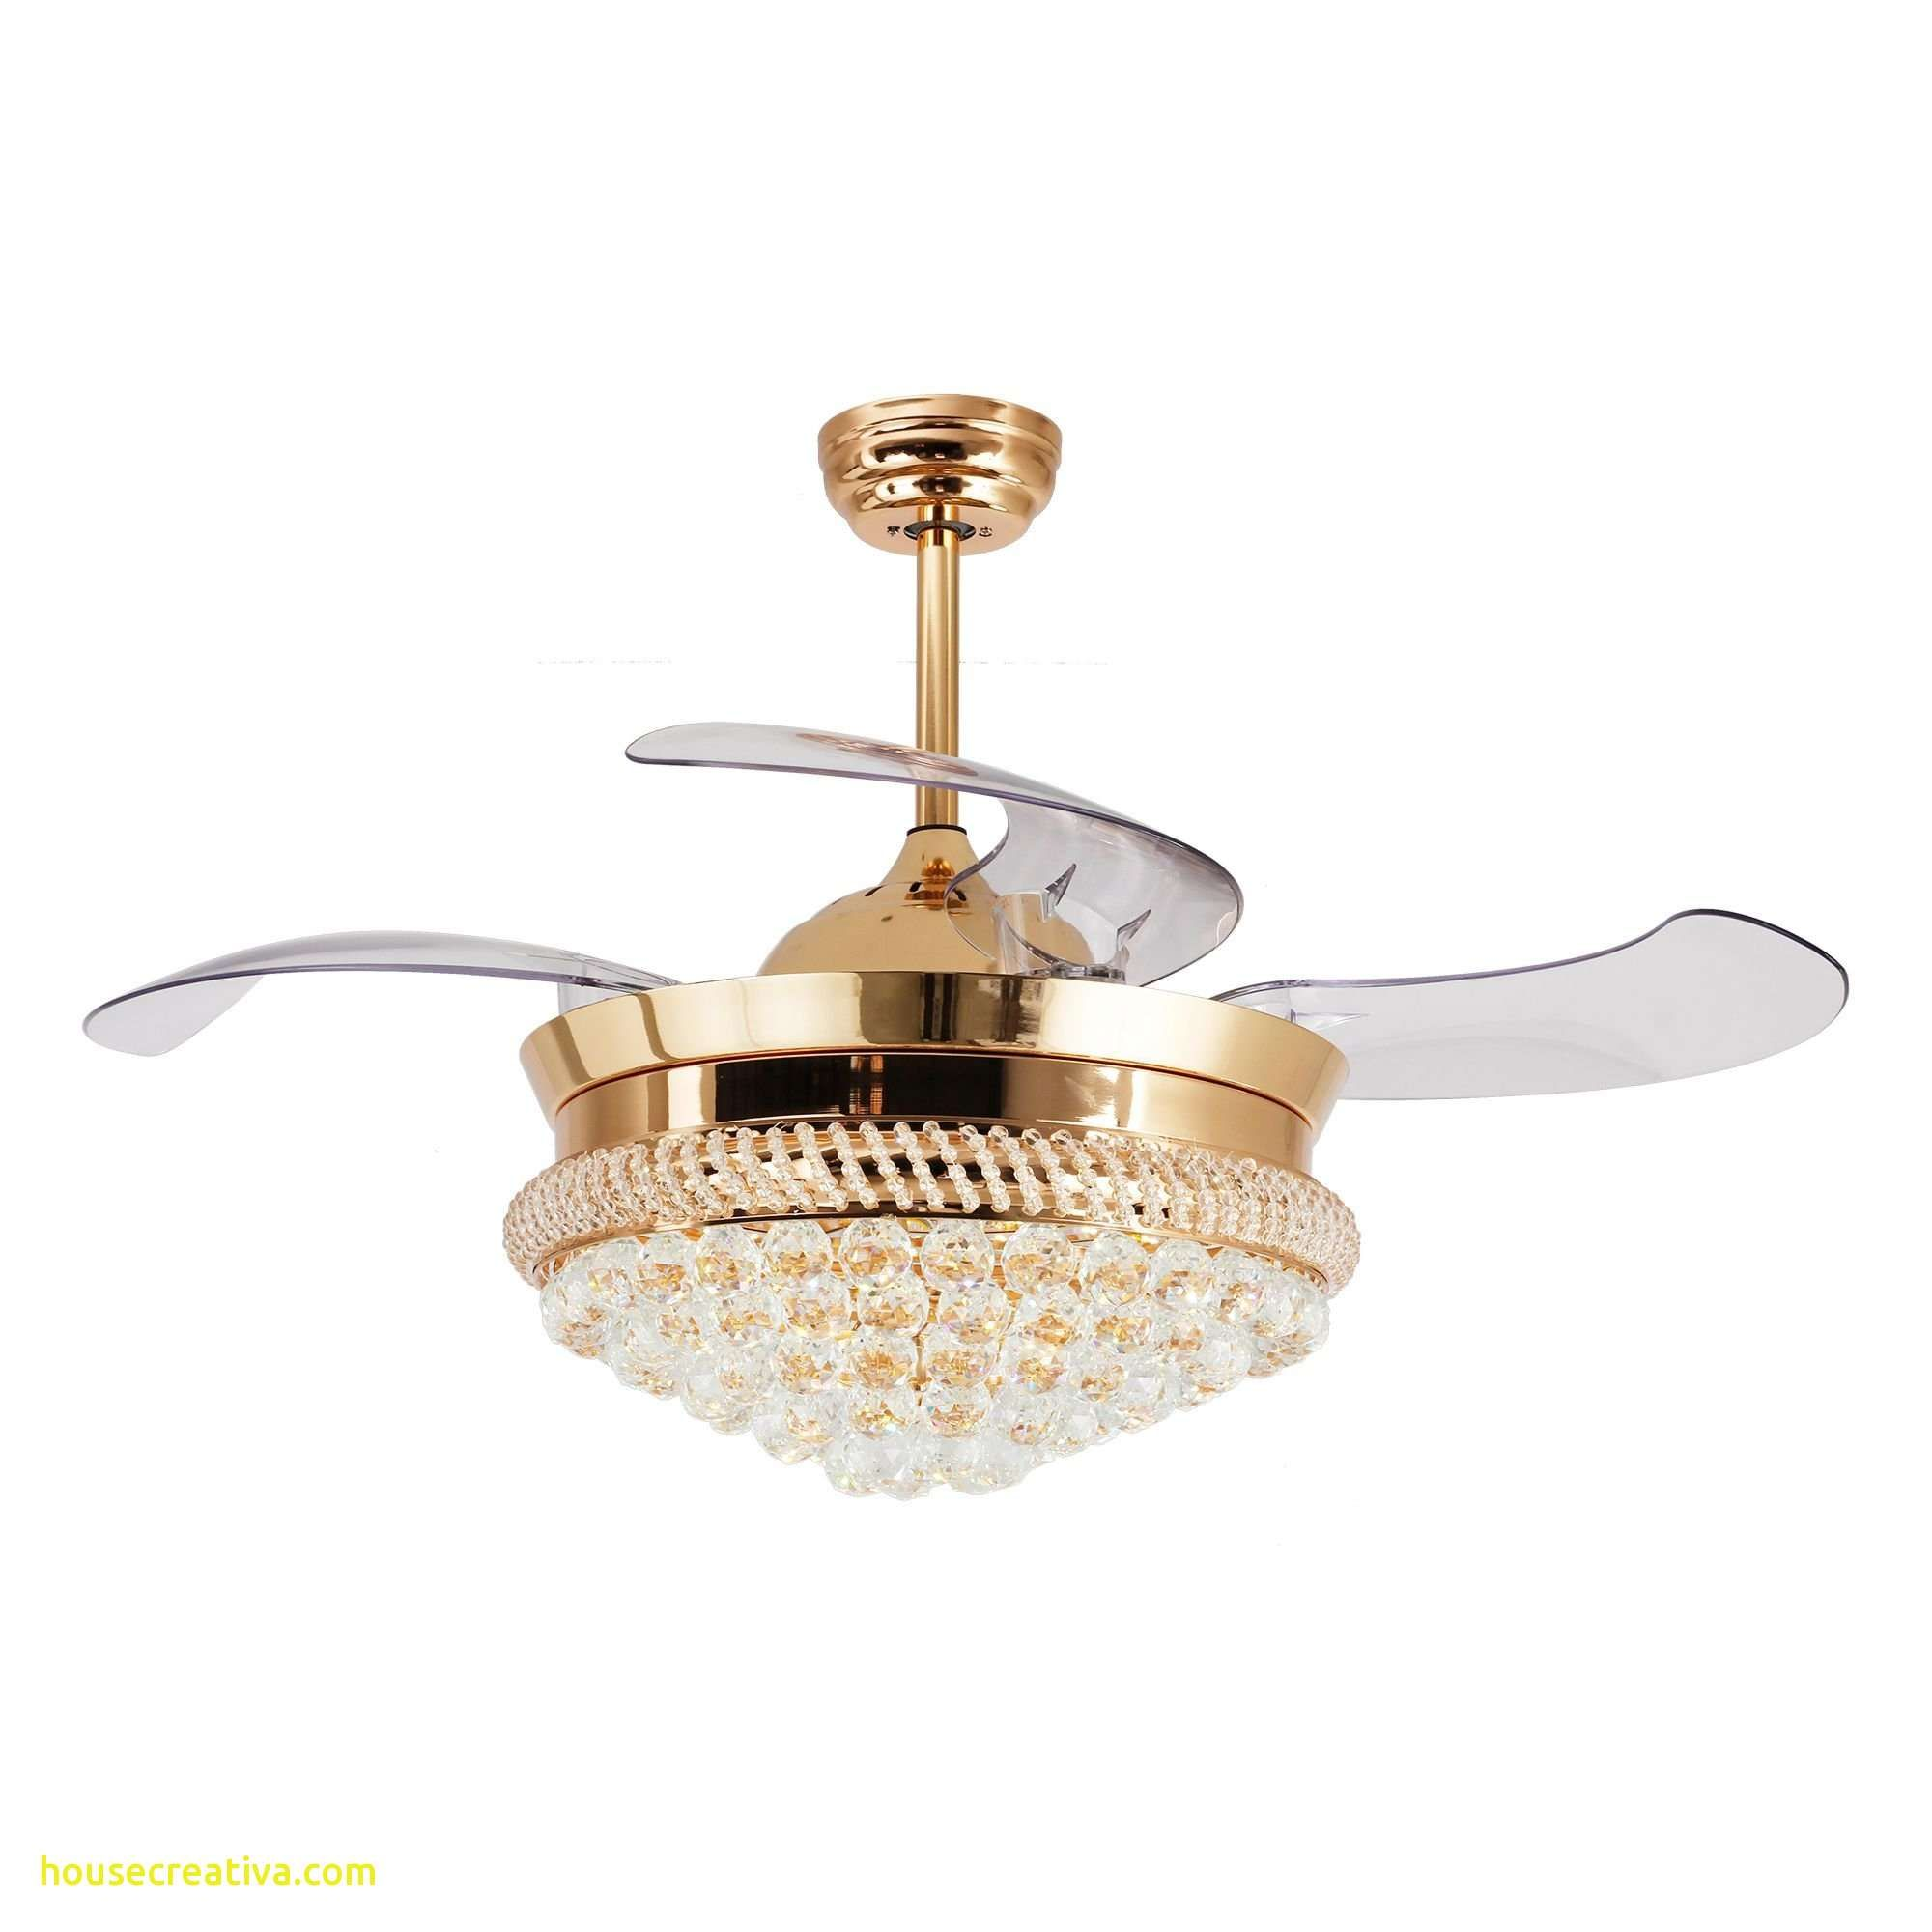 Black And Gold Ceiling Fan Best Of Black And Gold Ceiling Fan Homedecoration